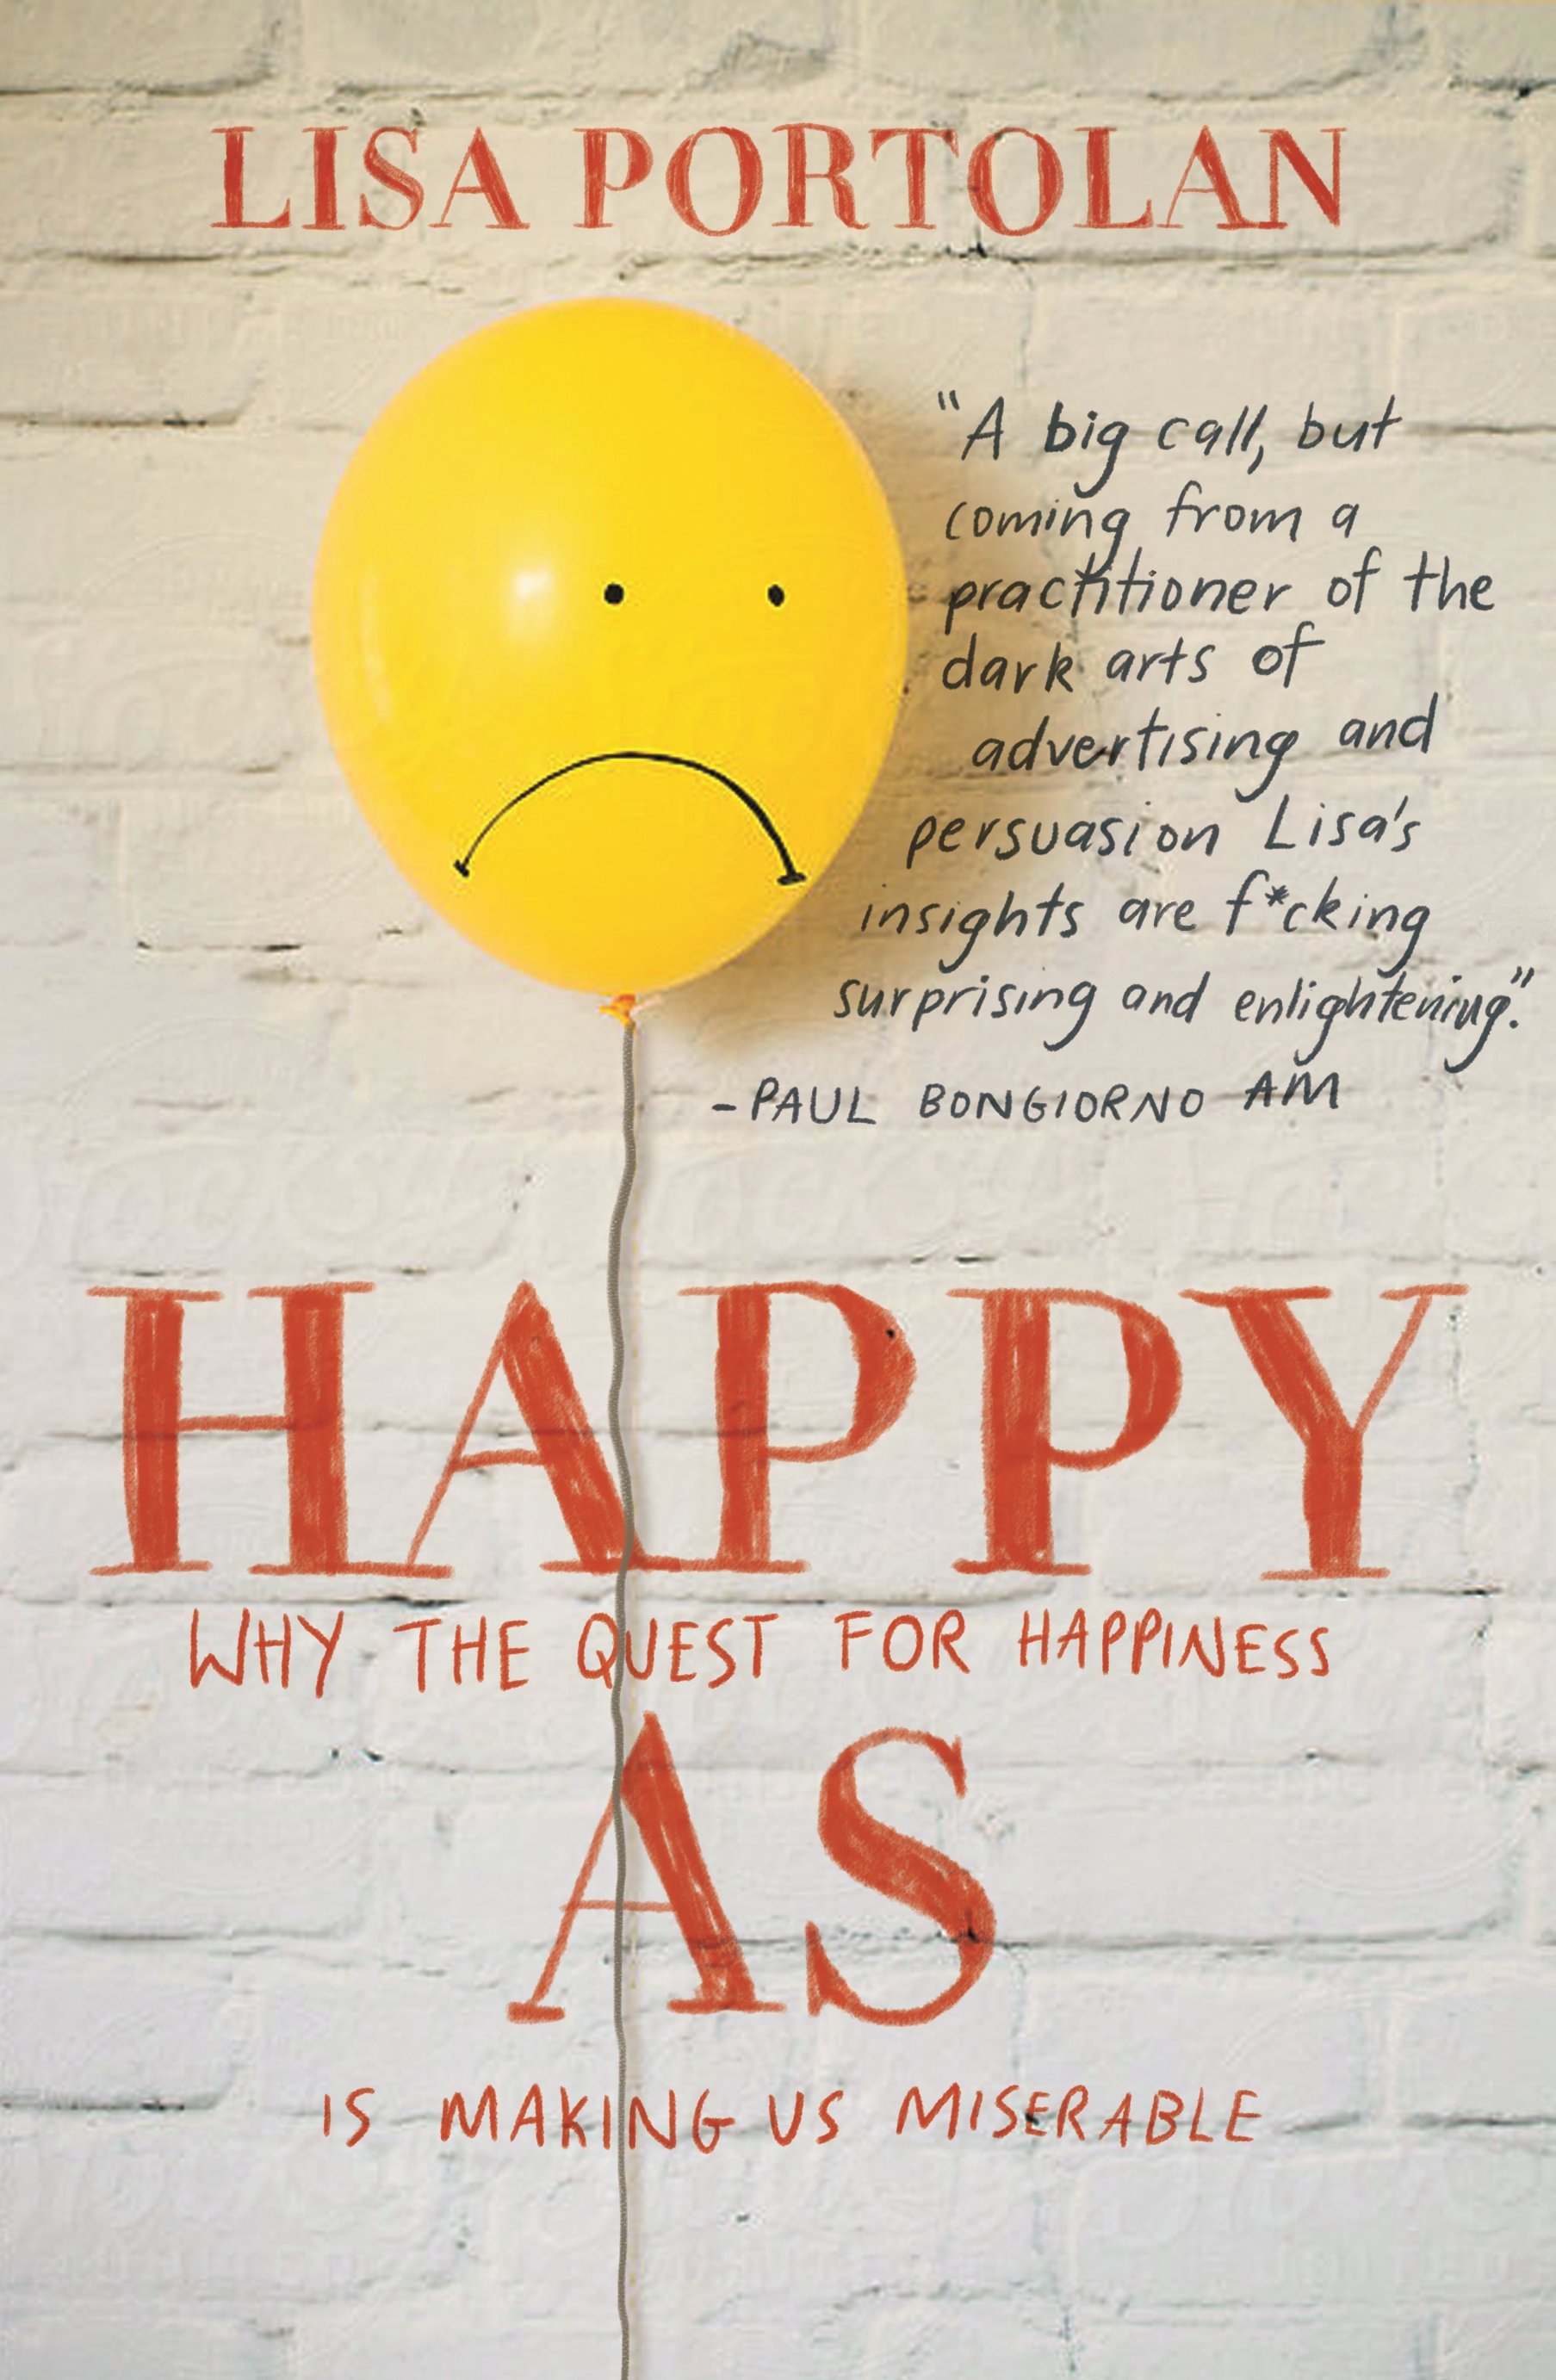 Happy As - Why the quest for happiness is making us miserable.